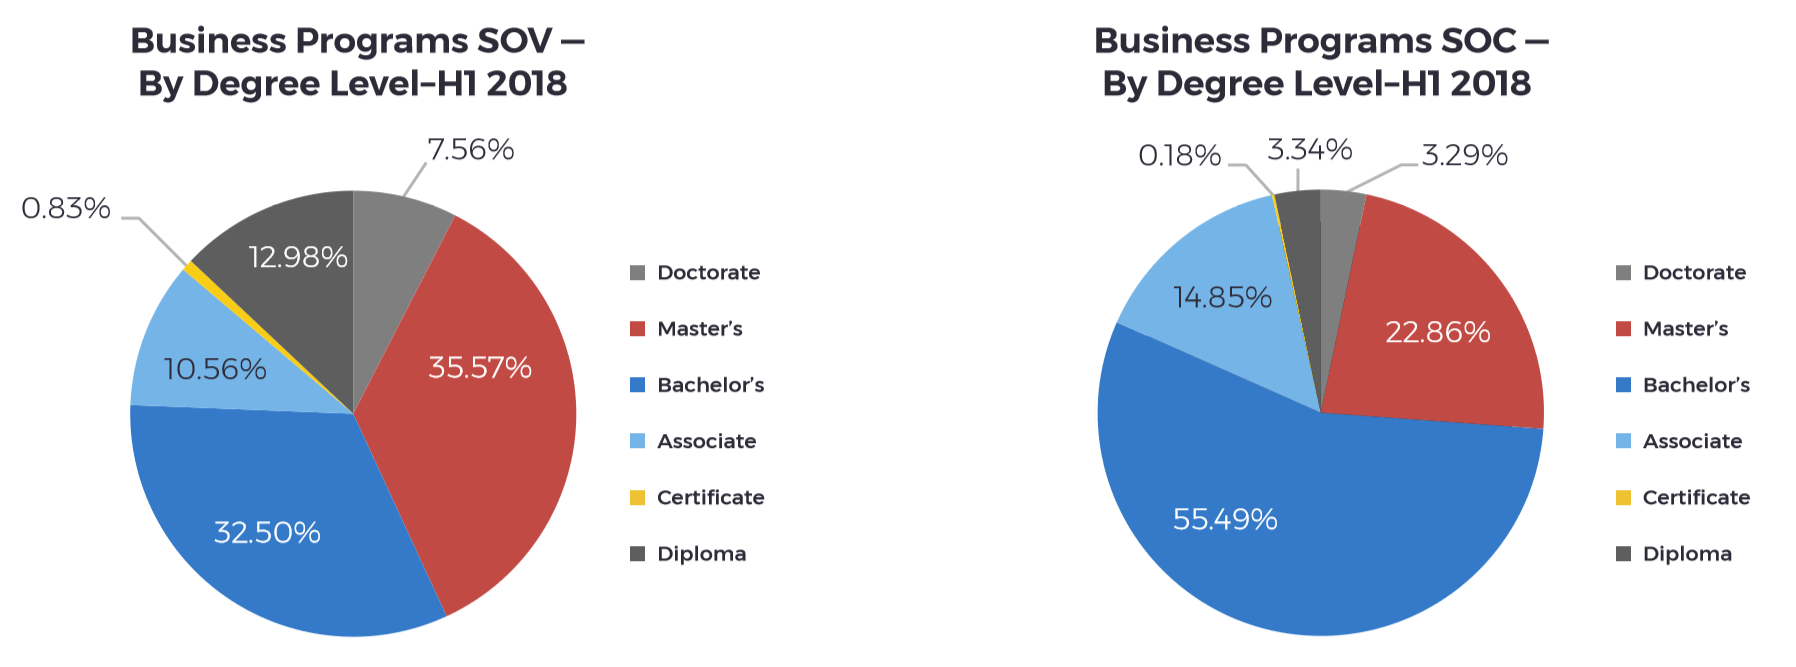 business programs sov soc by degree level h1 2018 education dms chart